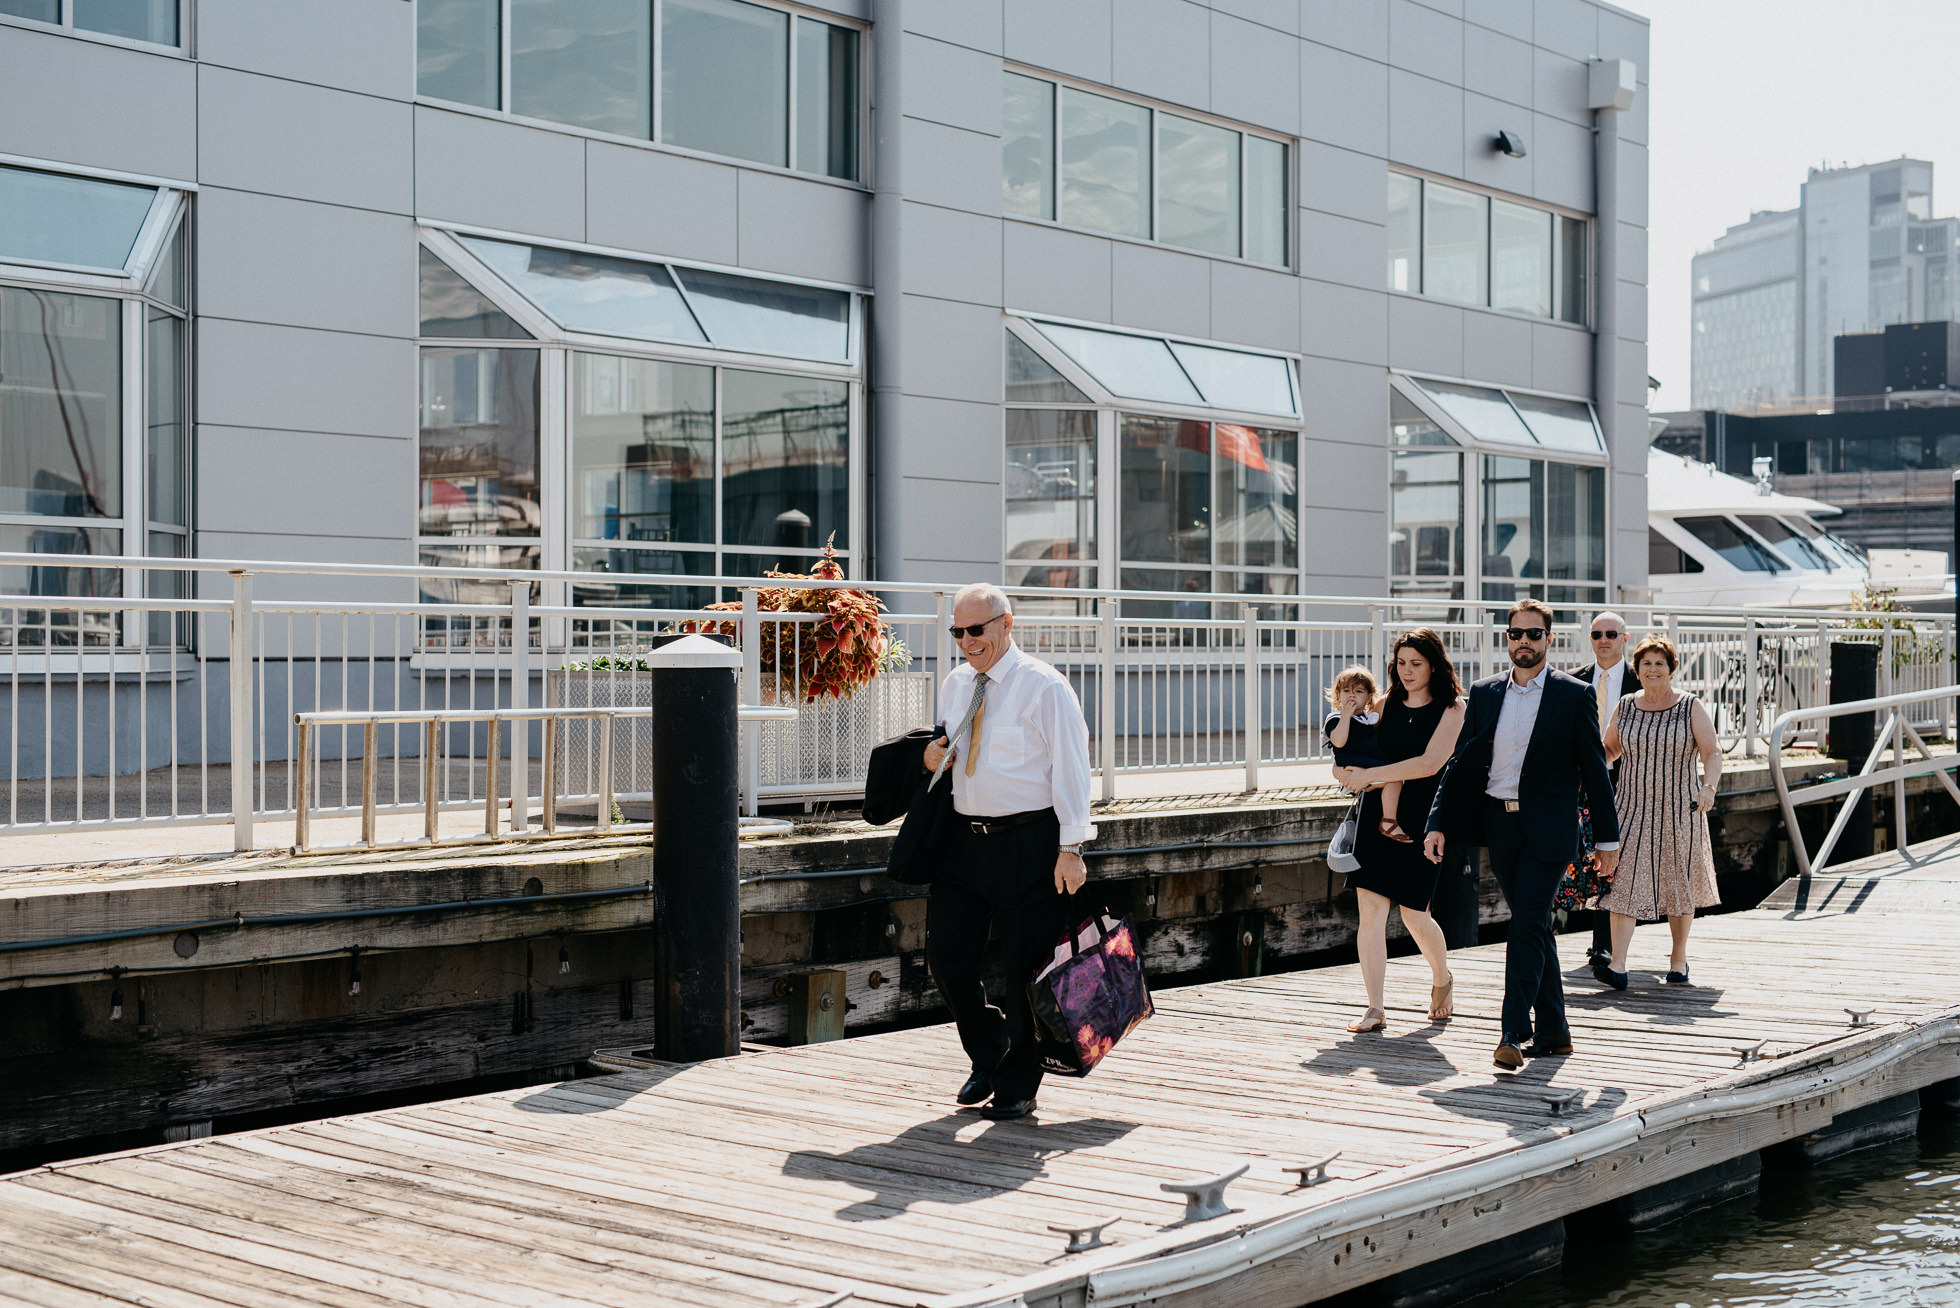 Chelsea Piers wedding ceremony